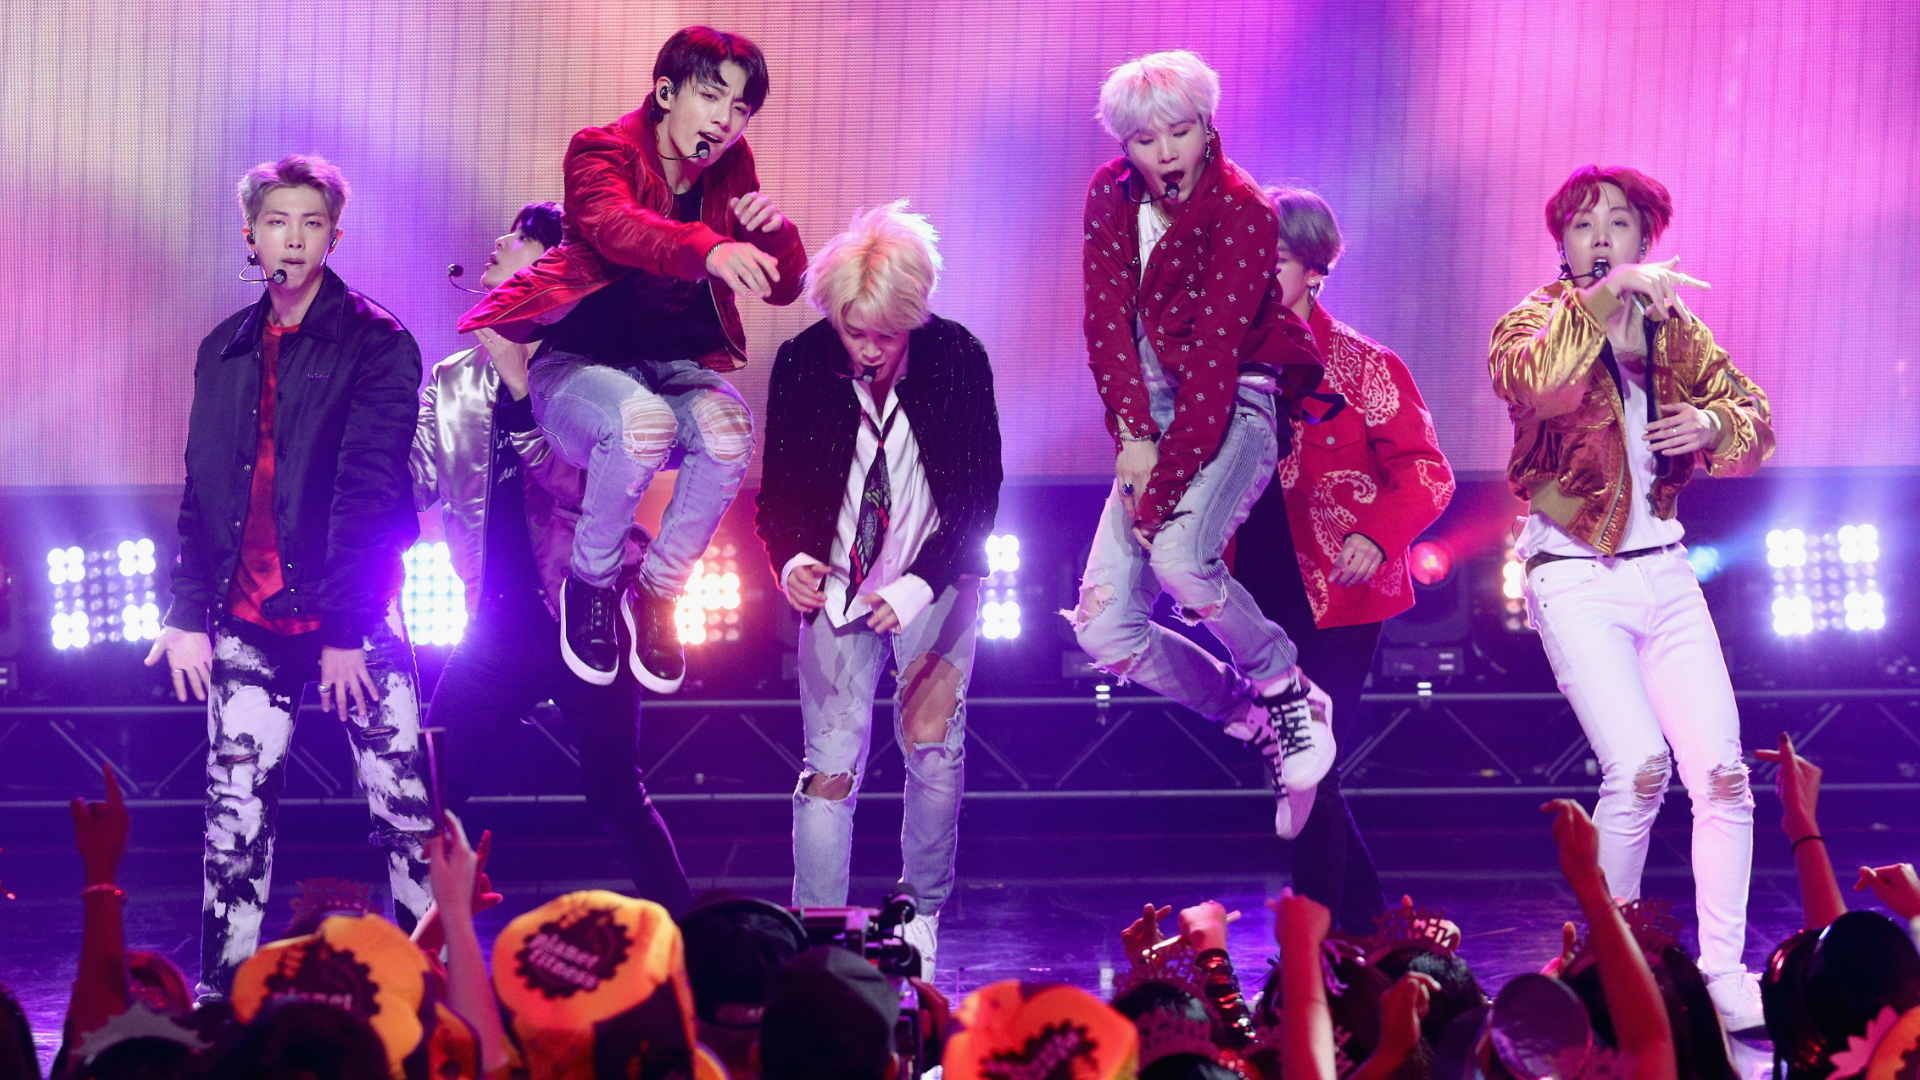 BTS, the biggest pop music and K-pop group, still face